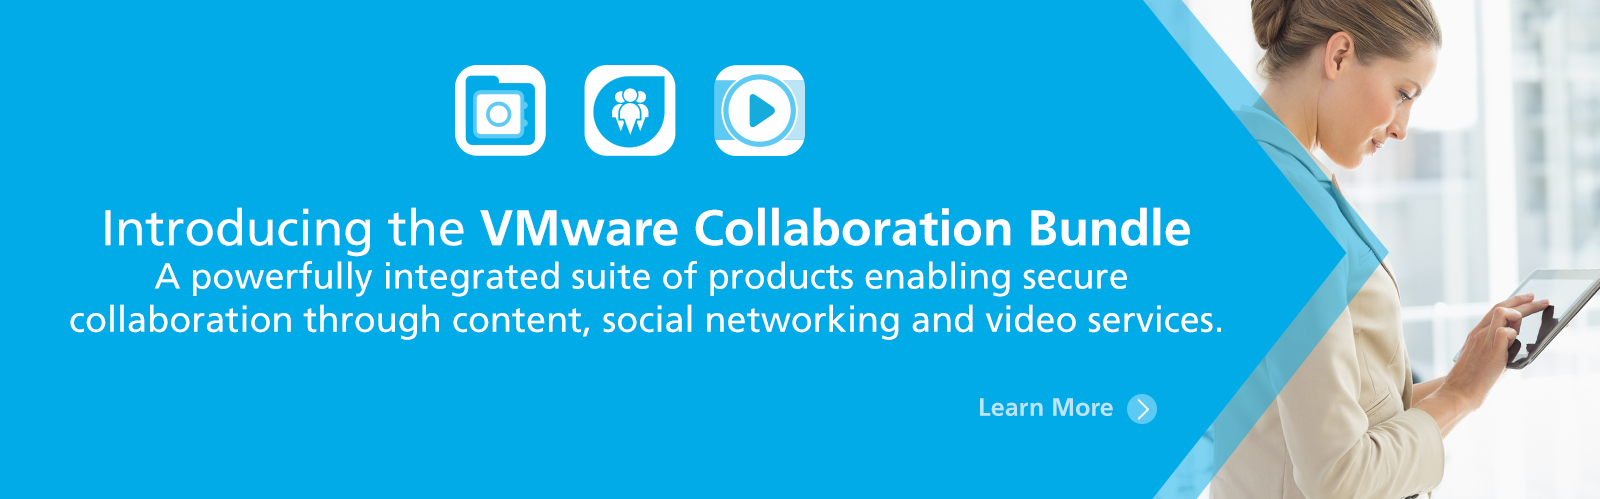 Collaboration Bundle Slide